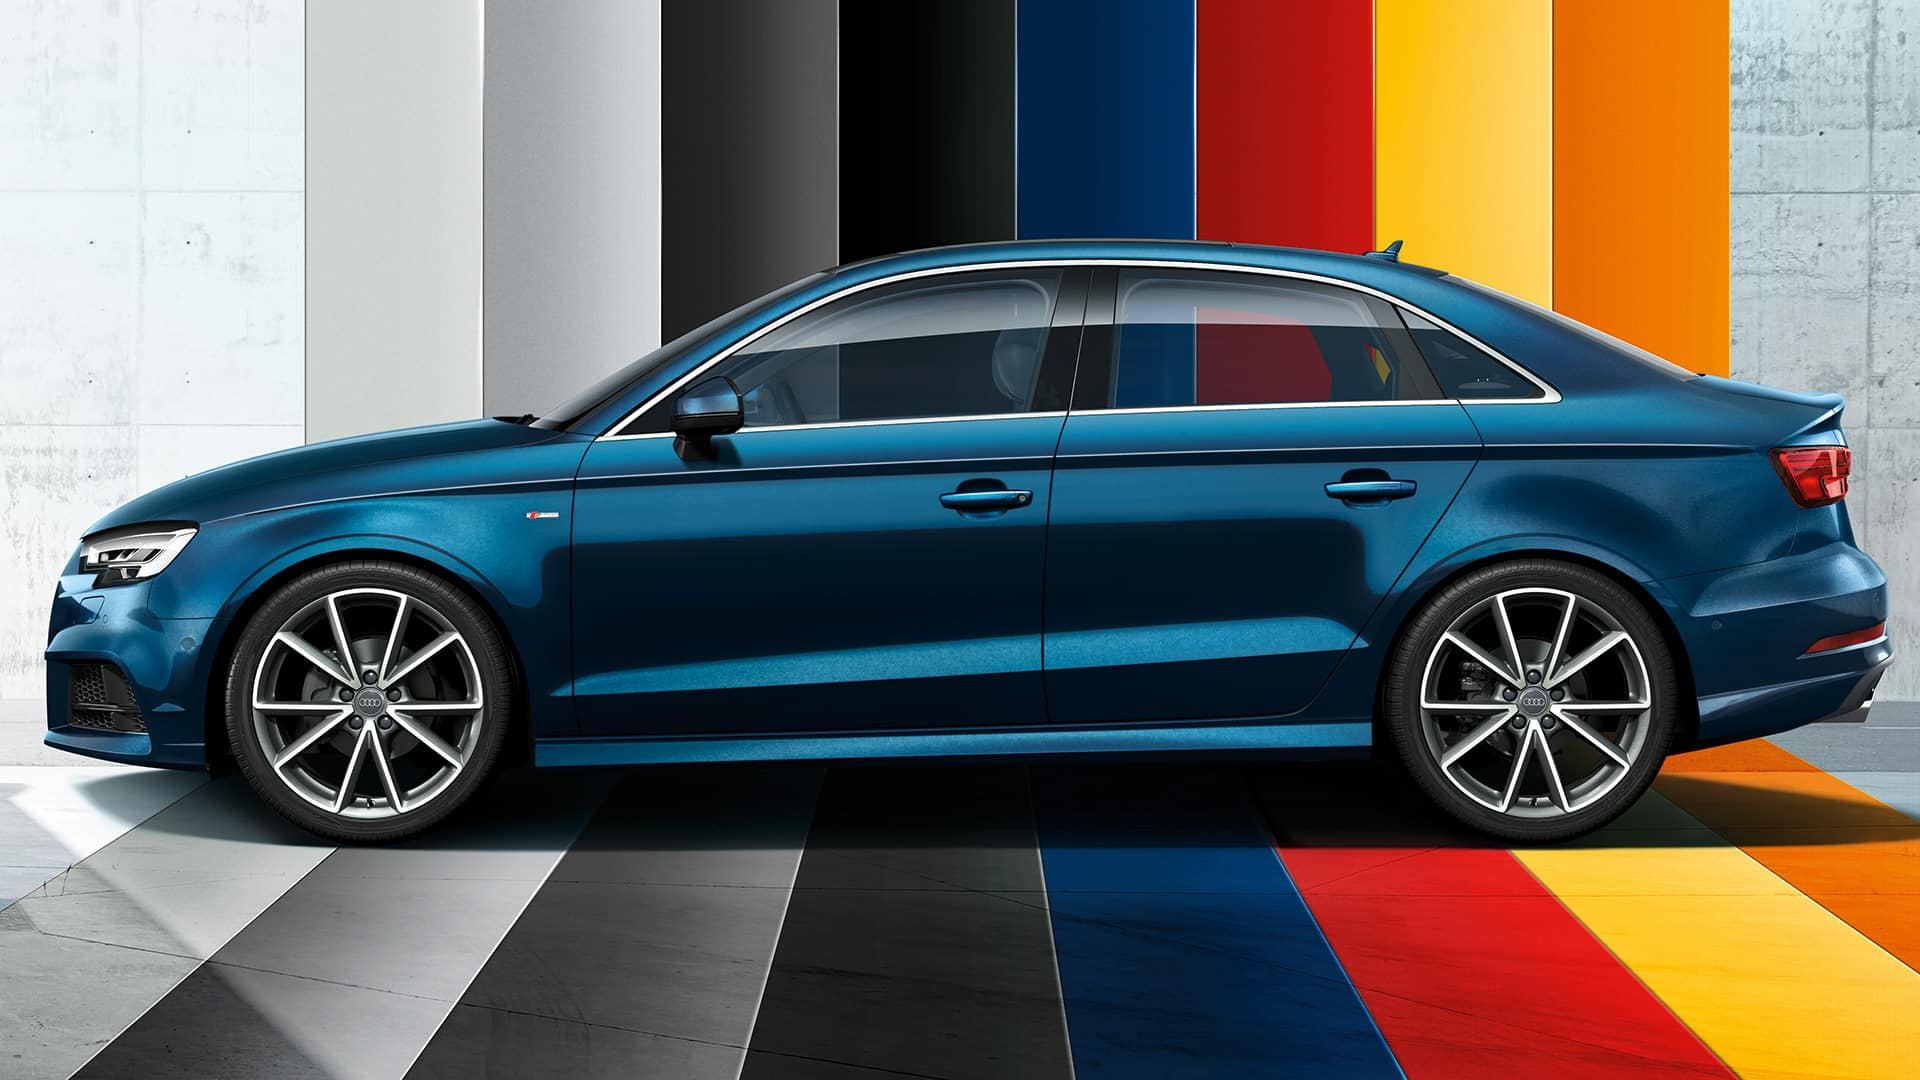 angle cars new sportback front the side uk audi